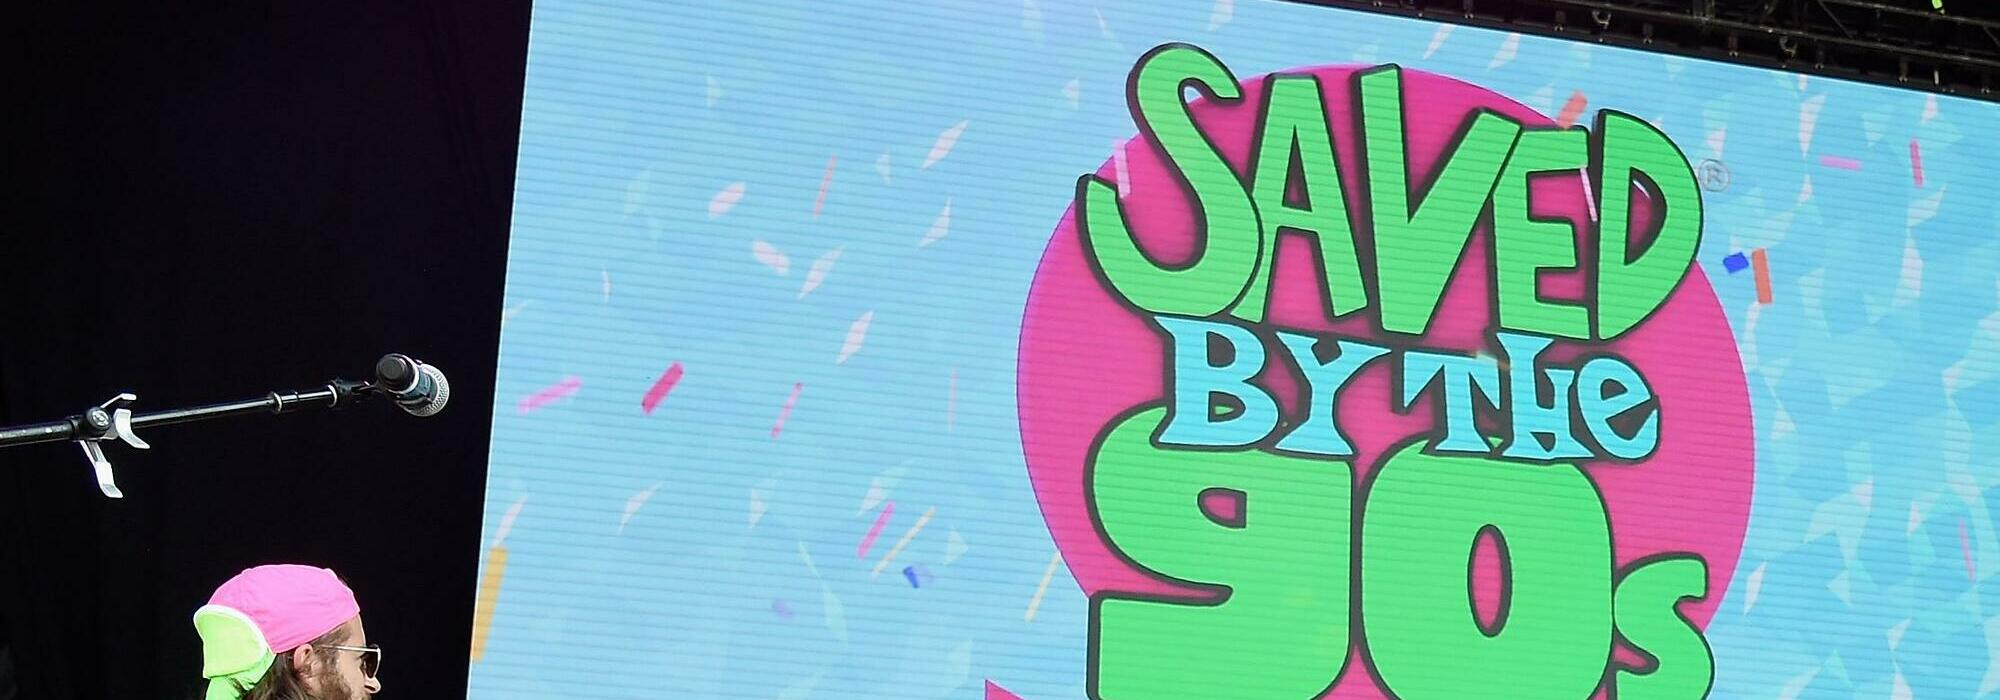 A Saved by the 90's live event